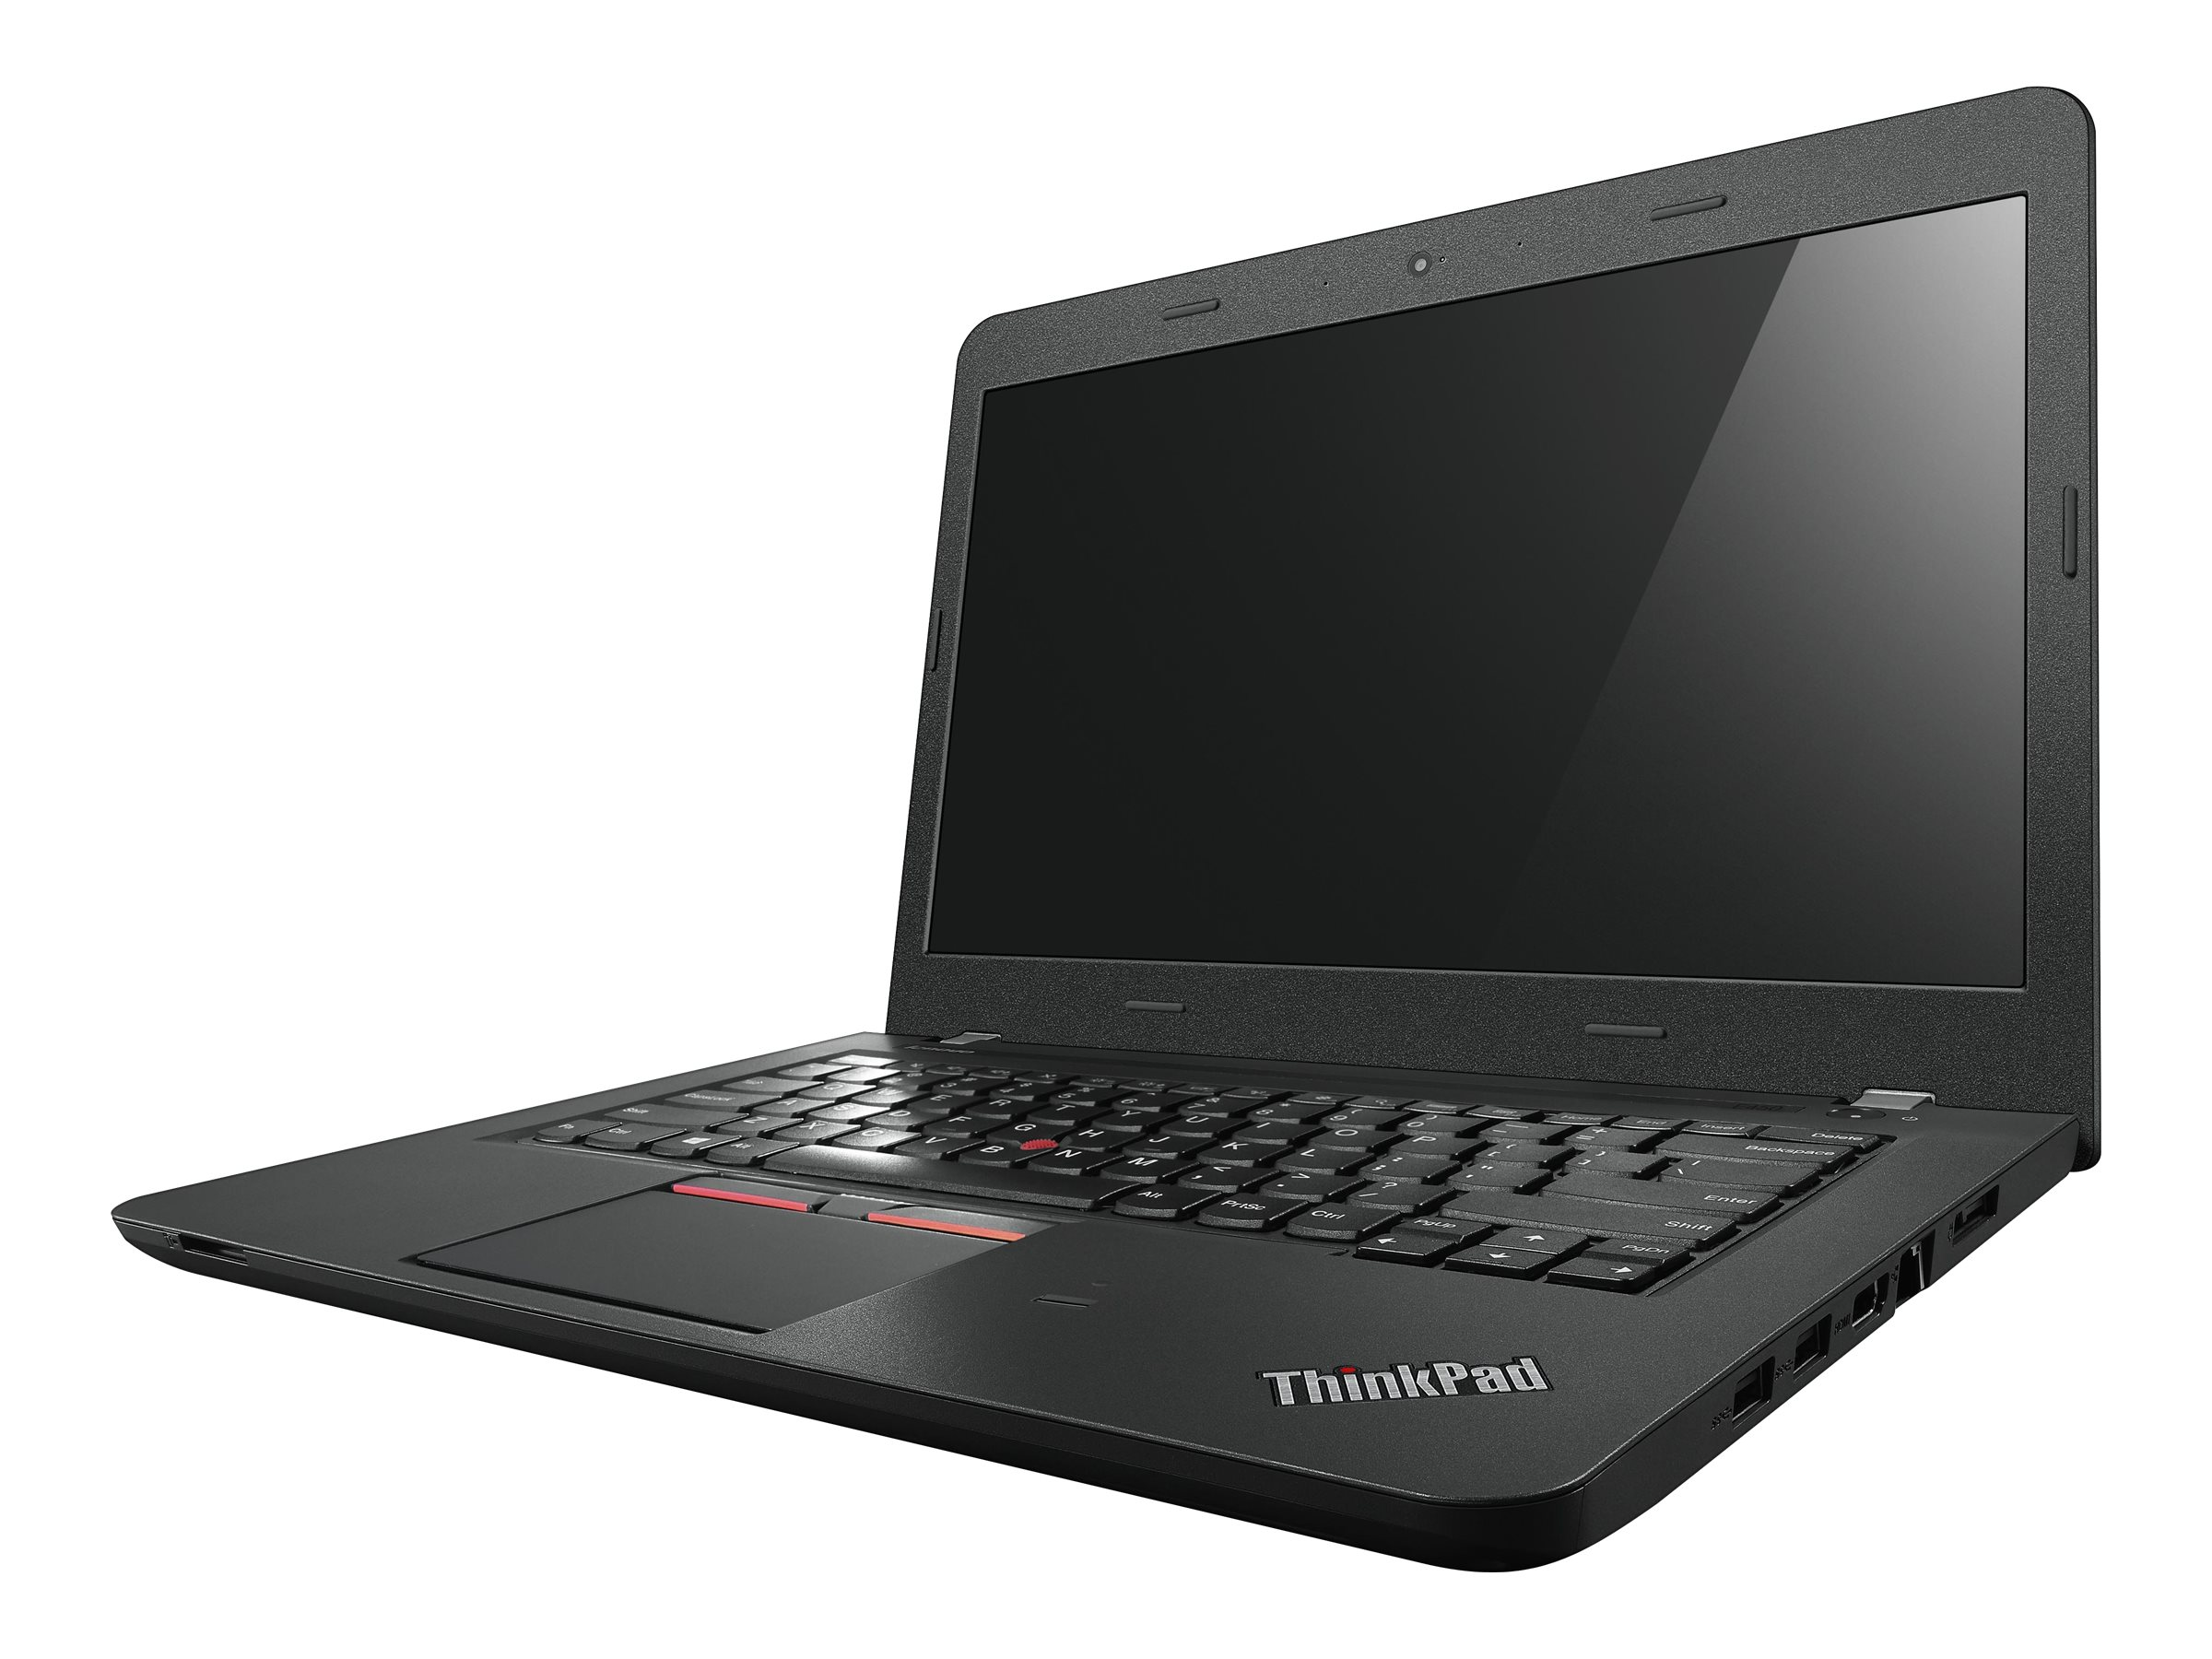 Scratch & Dent Lenovo ThinkPad E450 Core i5-5200U 2.2GHz 4GB 500GB ac BT FR WC 6C 14 HD W7P64-W8.1P, 20DC004CUS, 30911593, Notebooks